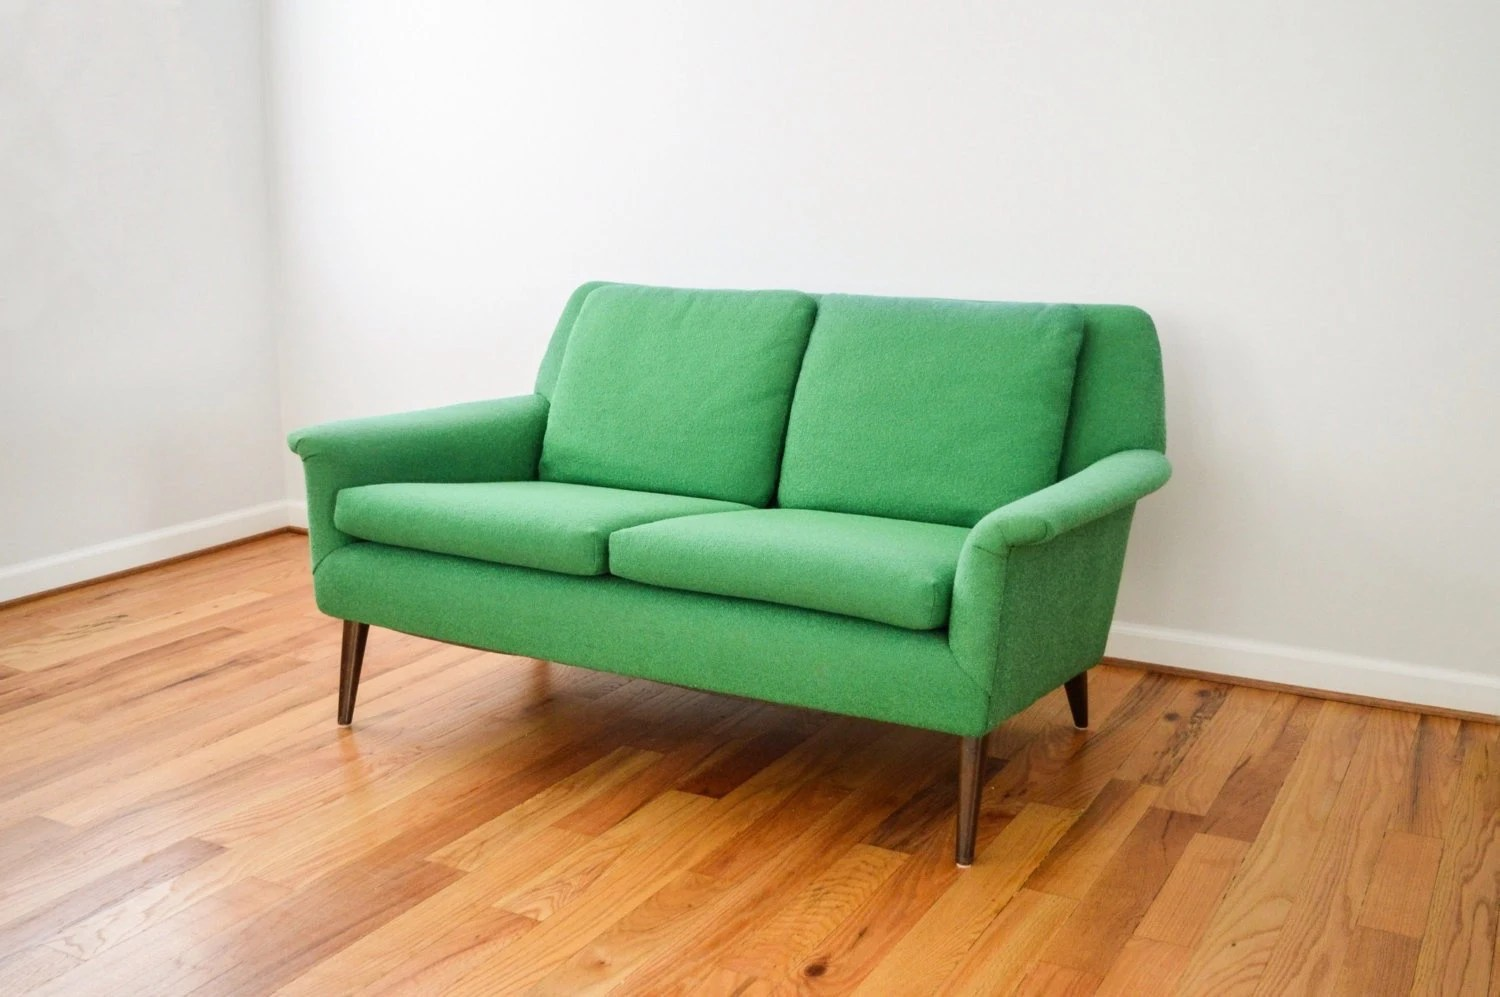 dux sofa by folke ohlsson foam replacement vancouver mid century loveseat couch beautiful swedish